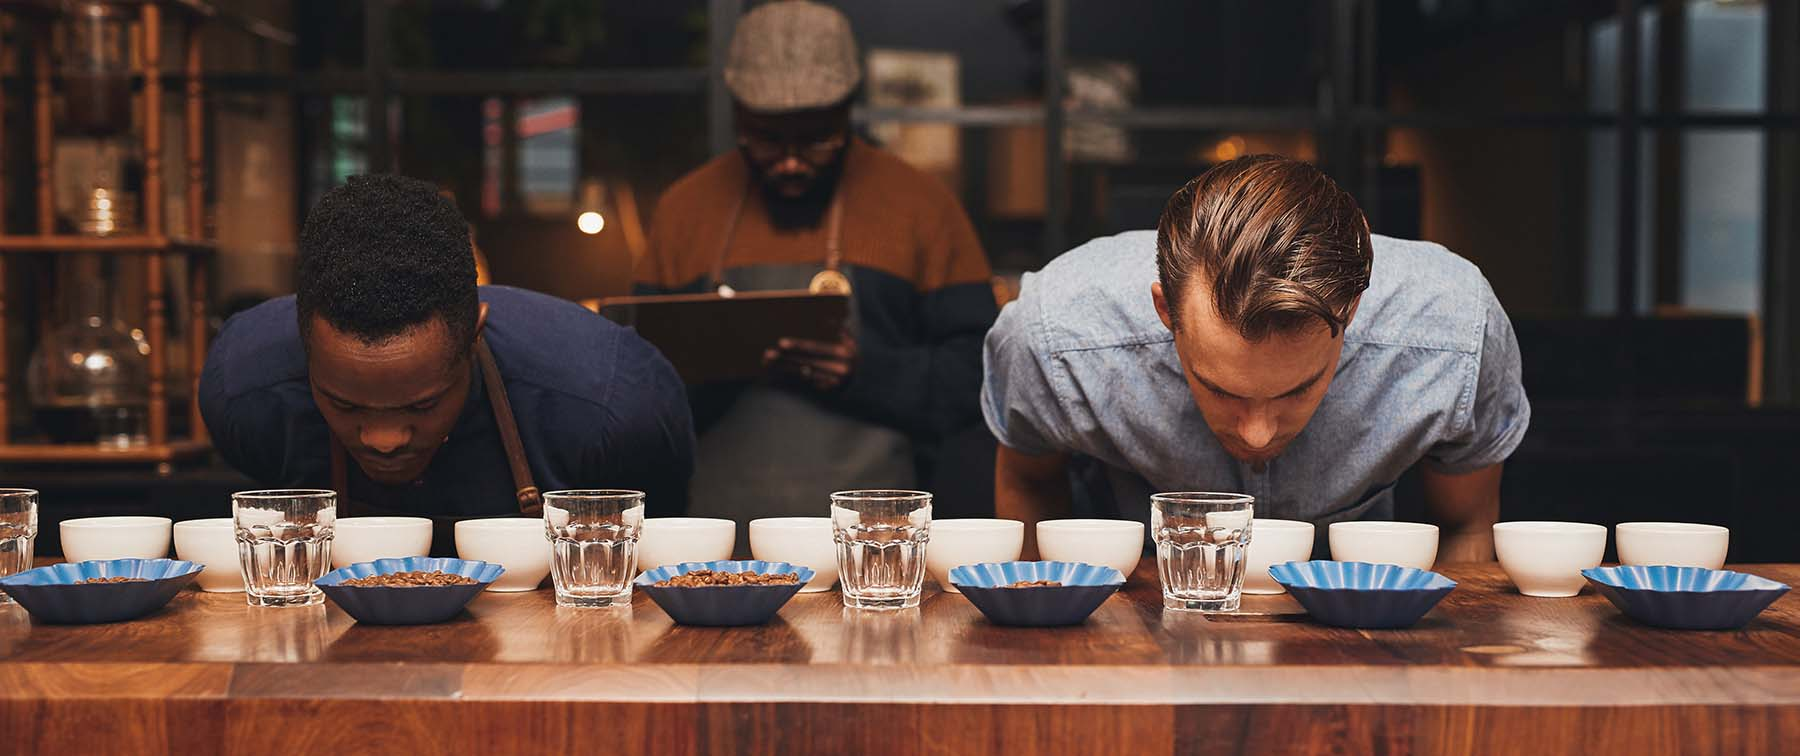 coffee-tasting-cupping.jpg